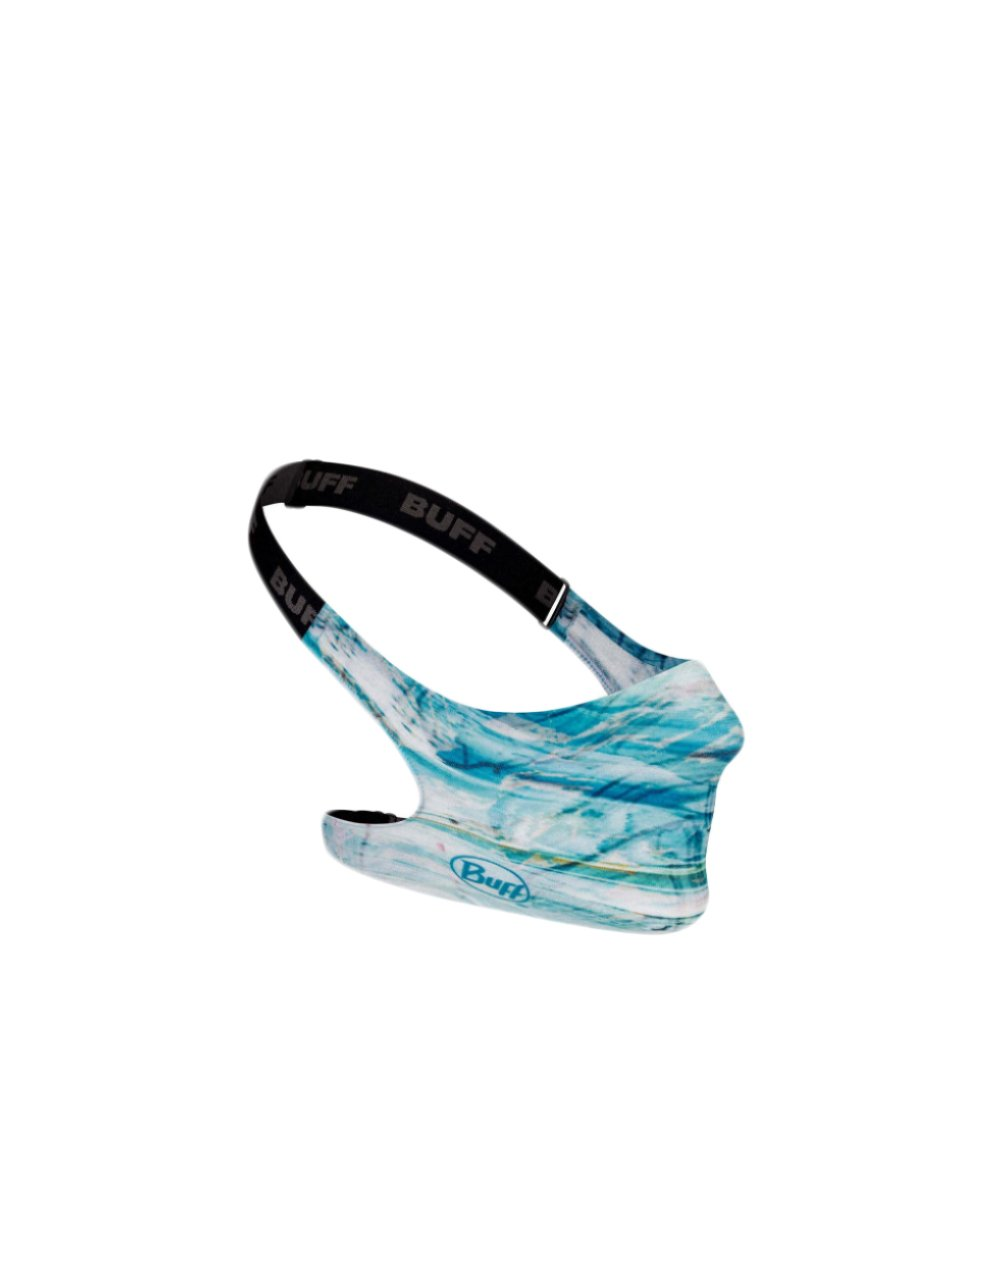 Buff Filter Mask Makrana (126638.786.10.00) Sky Blue